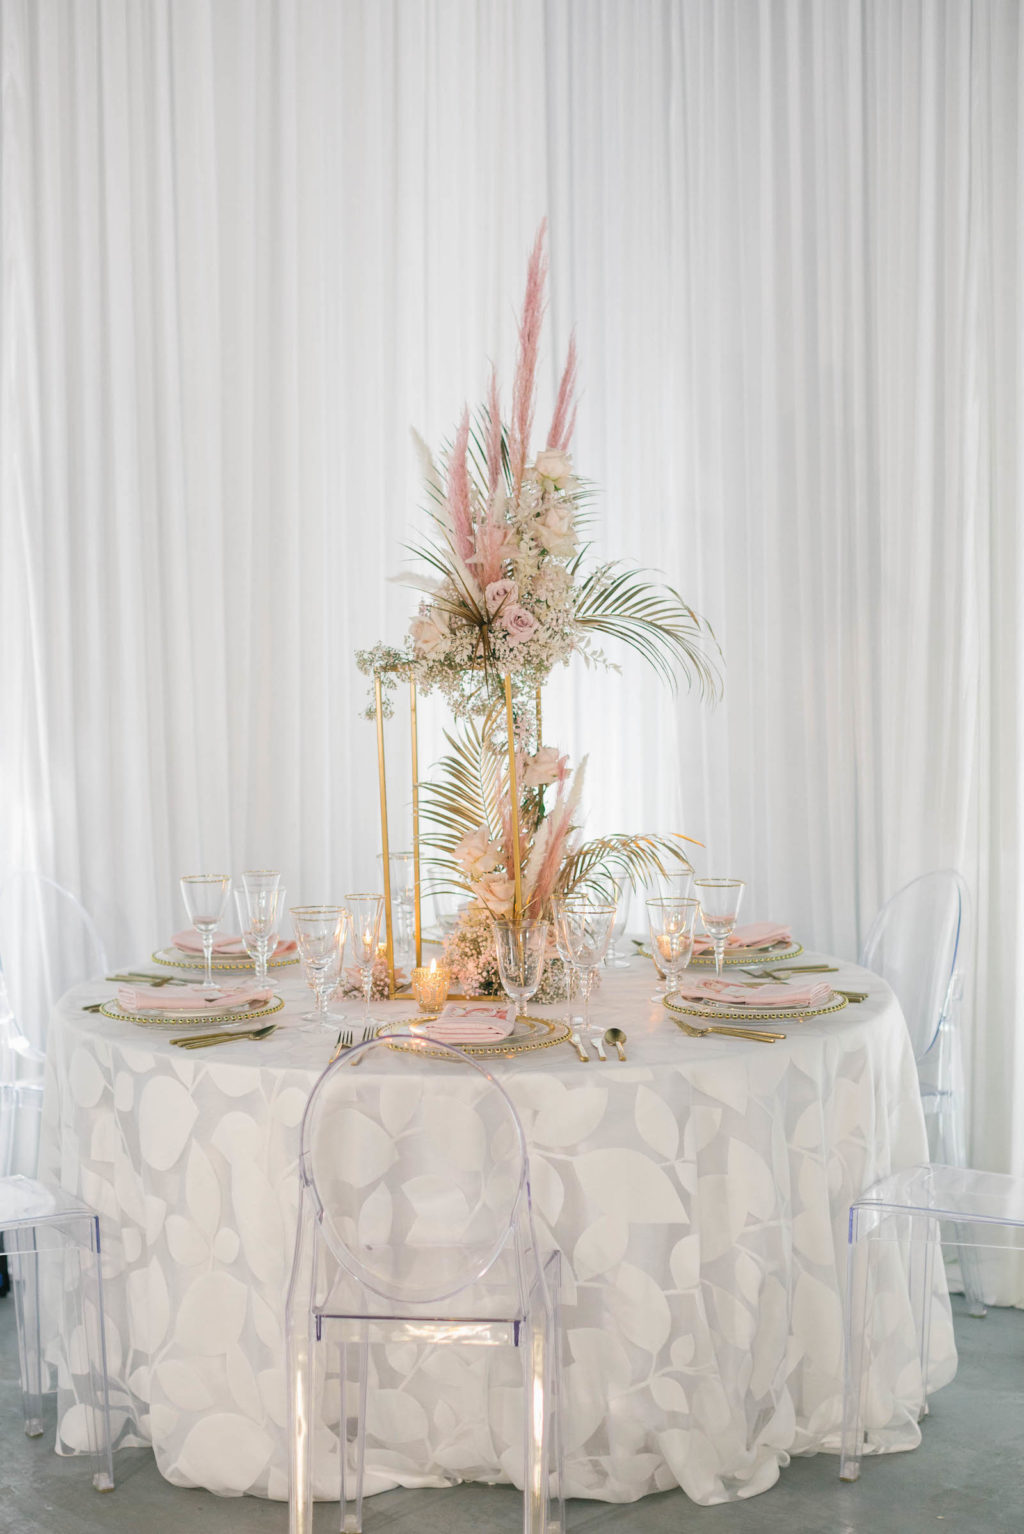 Clearwater Beach Wedding Venue Bellwether Beach Resort Styled With Love Something Bleu by McKenna Bleu | Instagram Wedding Designer Inspiration | Clear Ghost Chairs and White Botanical Print Reception Table Linen with Gold Boho Centerpiece with Pampas Grass Roses and Palm Leaves